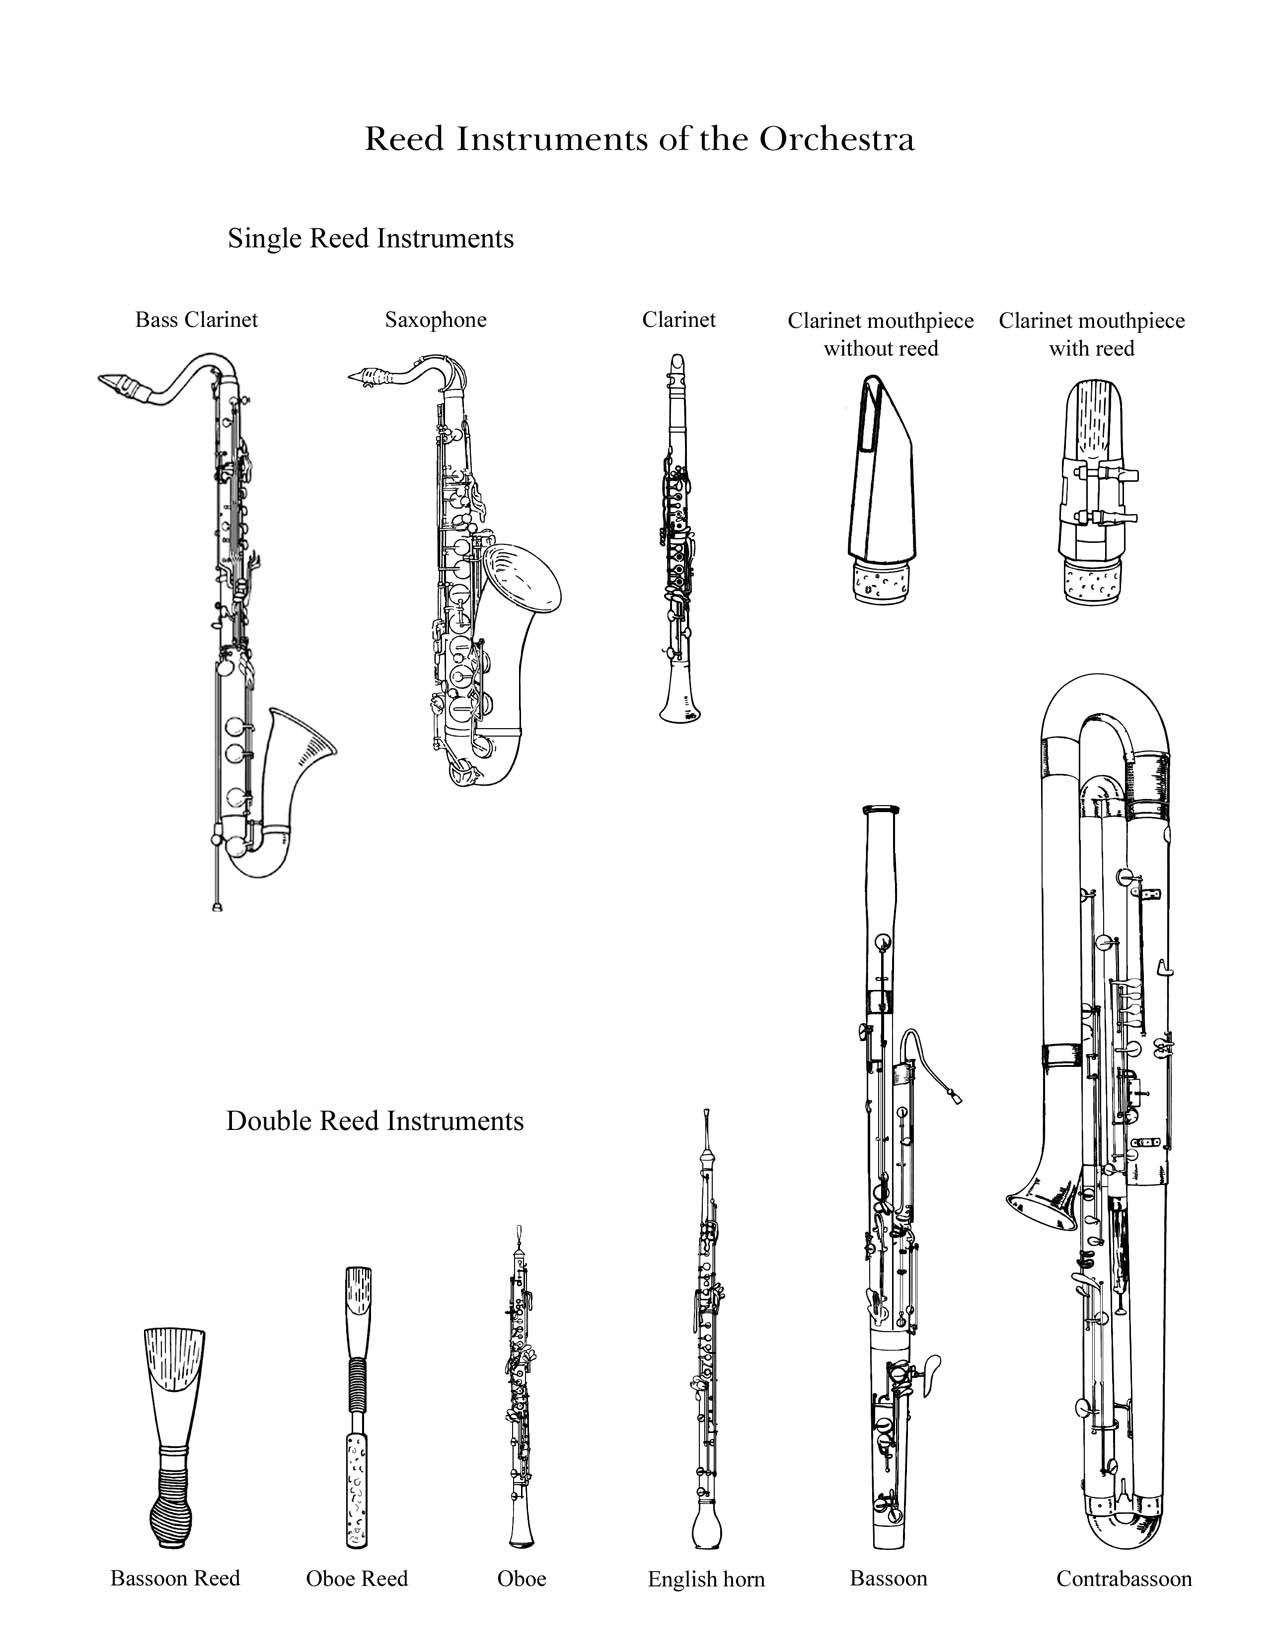 Drawn instrument orchestra music Instruments by Family